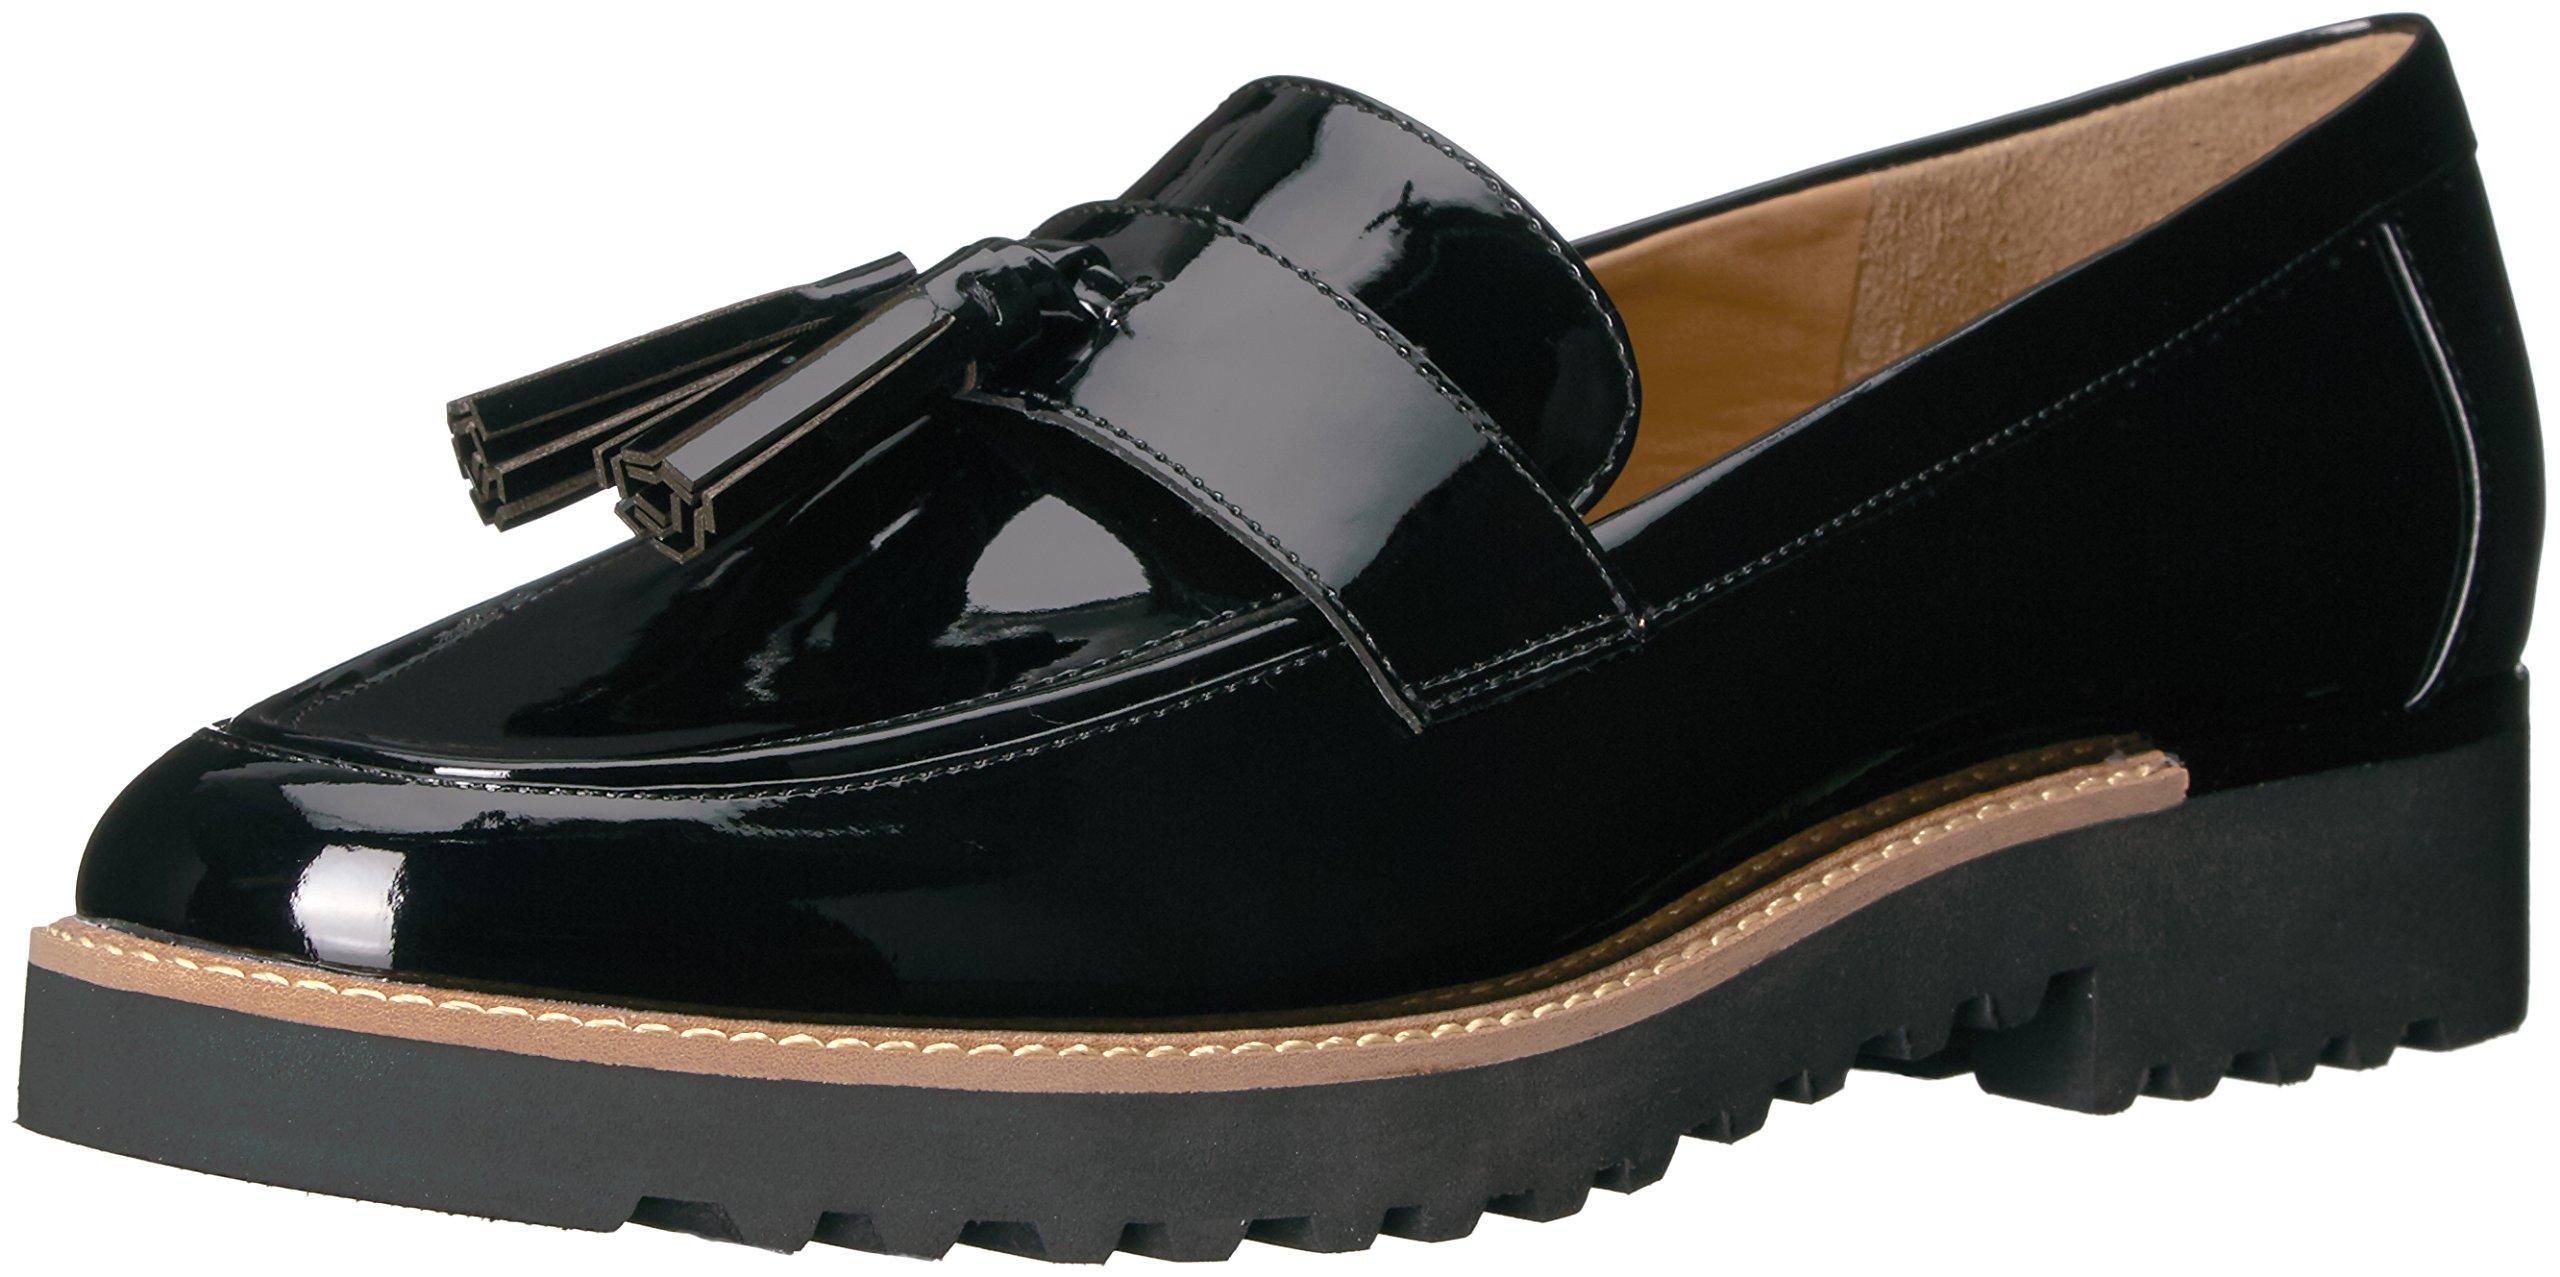 Franco Sarto Women's Carolynn Loafer Flat, Black, 9 M US by Franco Sarto (Image #1)